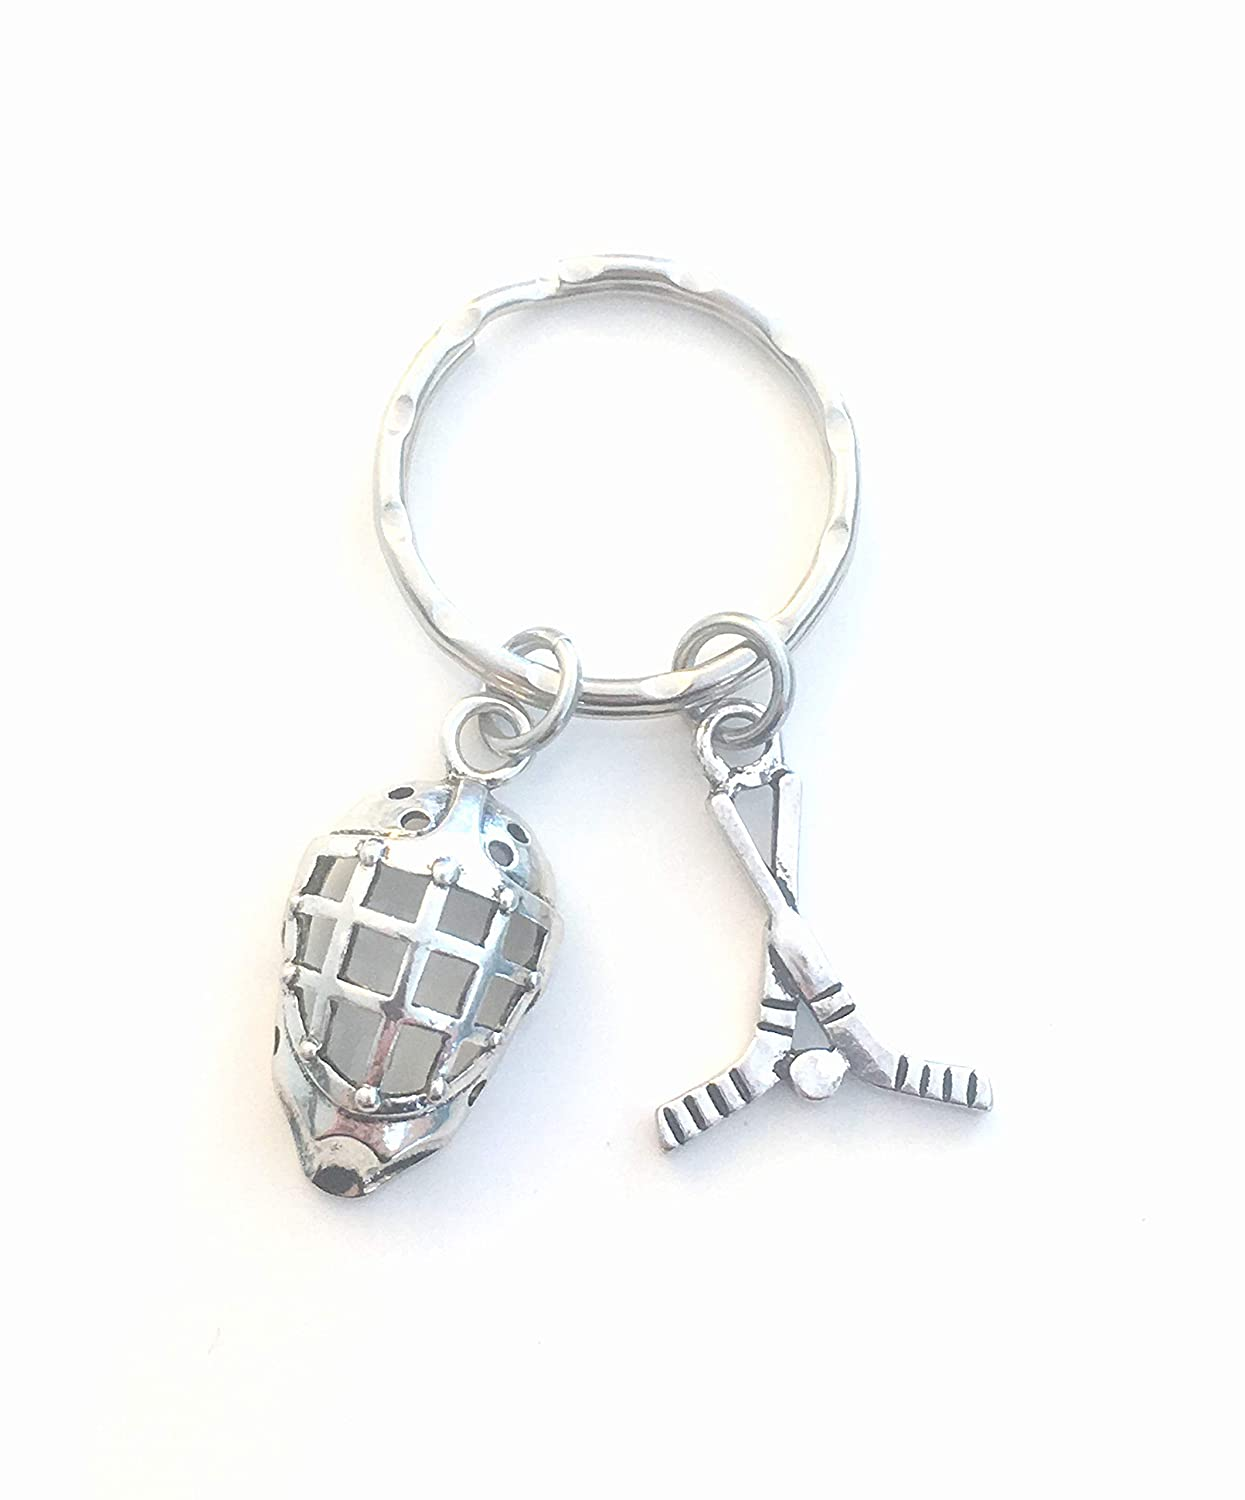 Hockey Goalie Keychain, Gift for Coach or Player's Key Chain